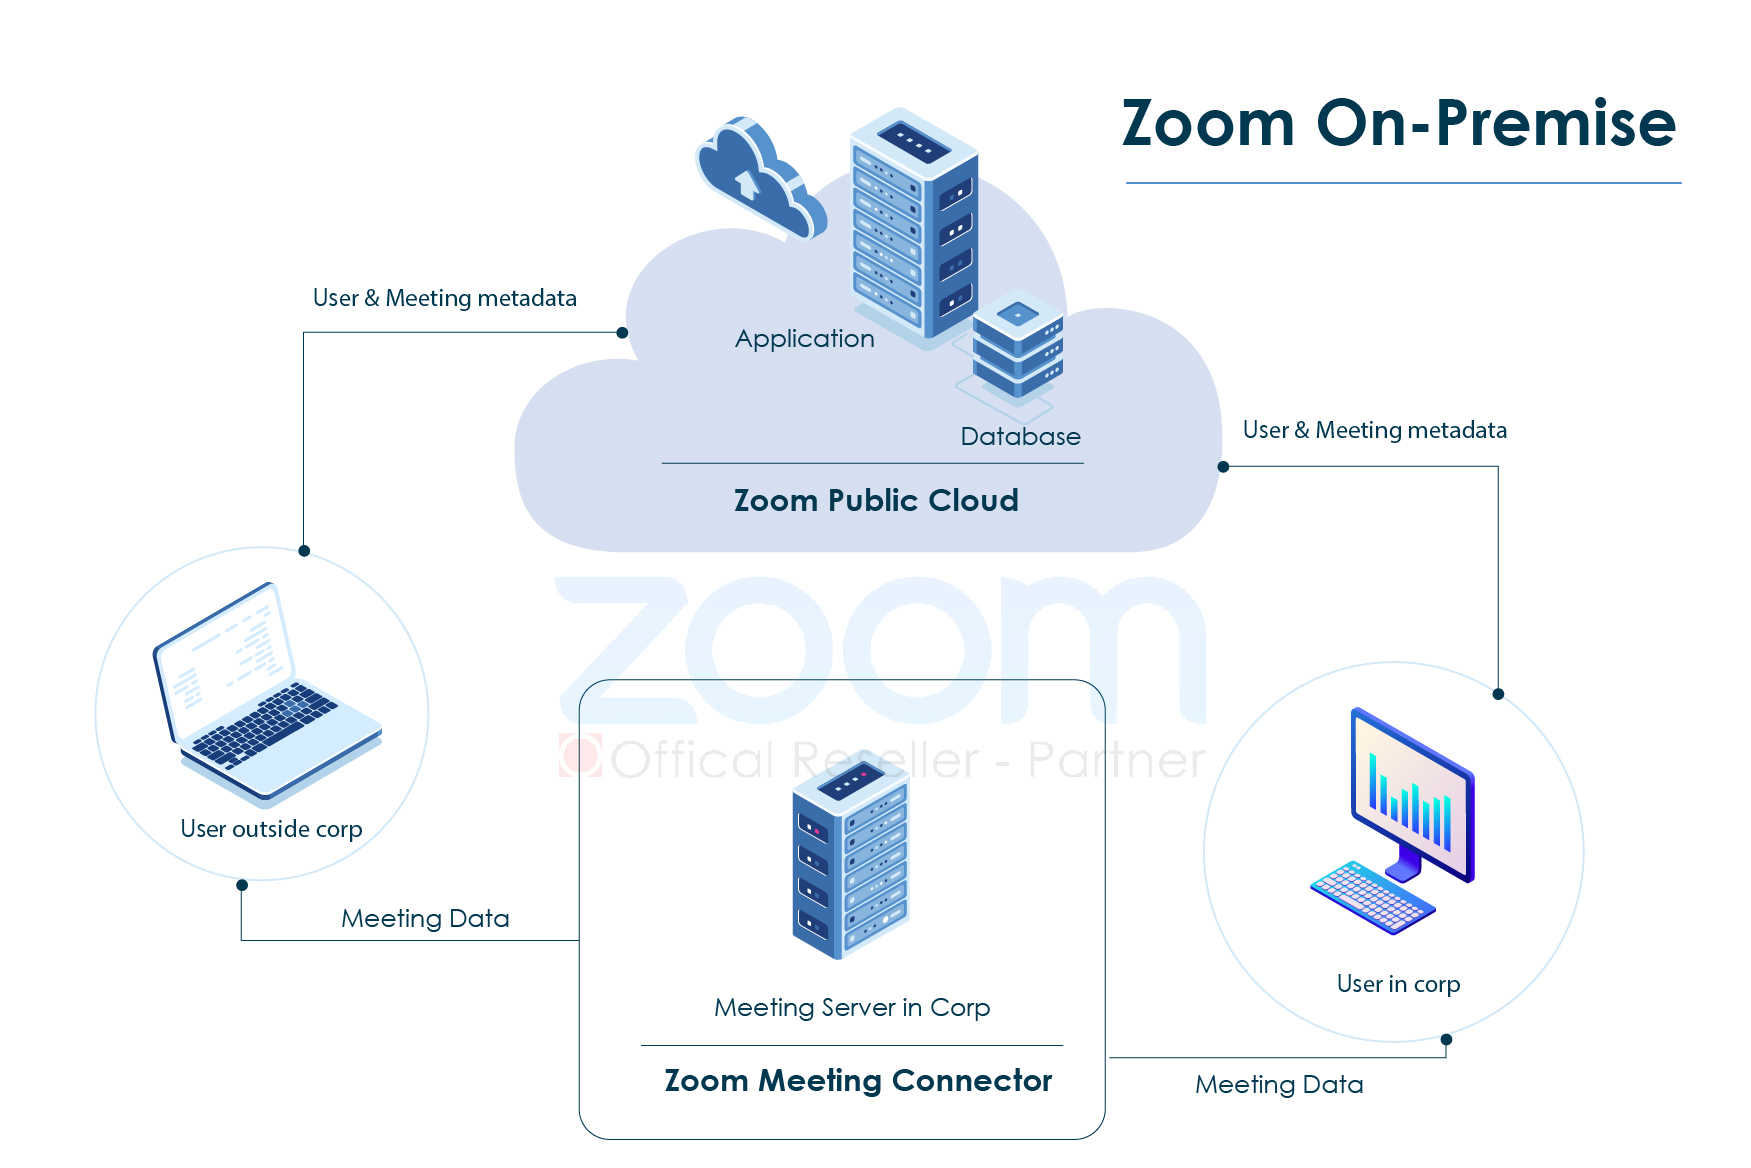 Mo-hinh-van-hanh-he-thong-video-conference-cua-zoom-on-premise